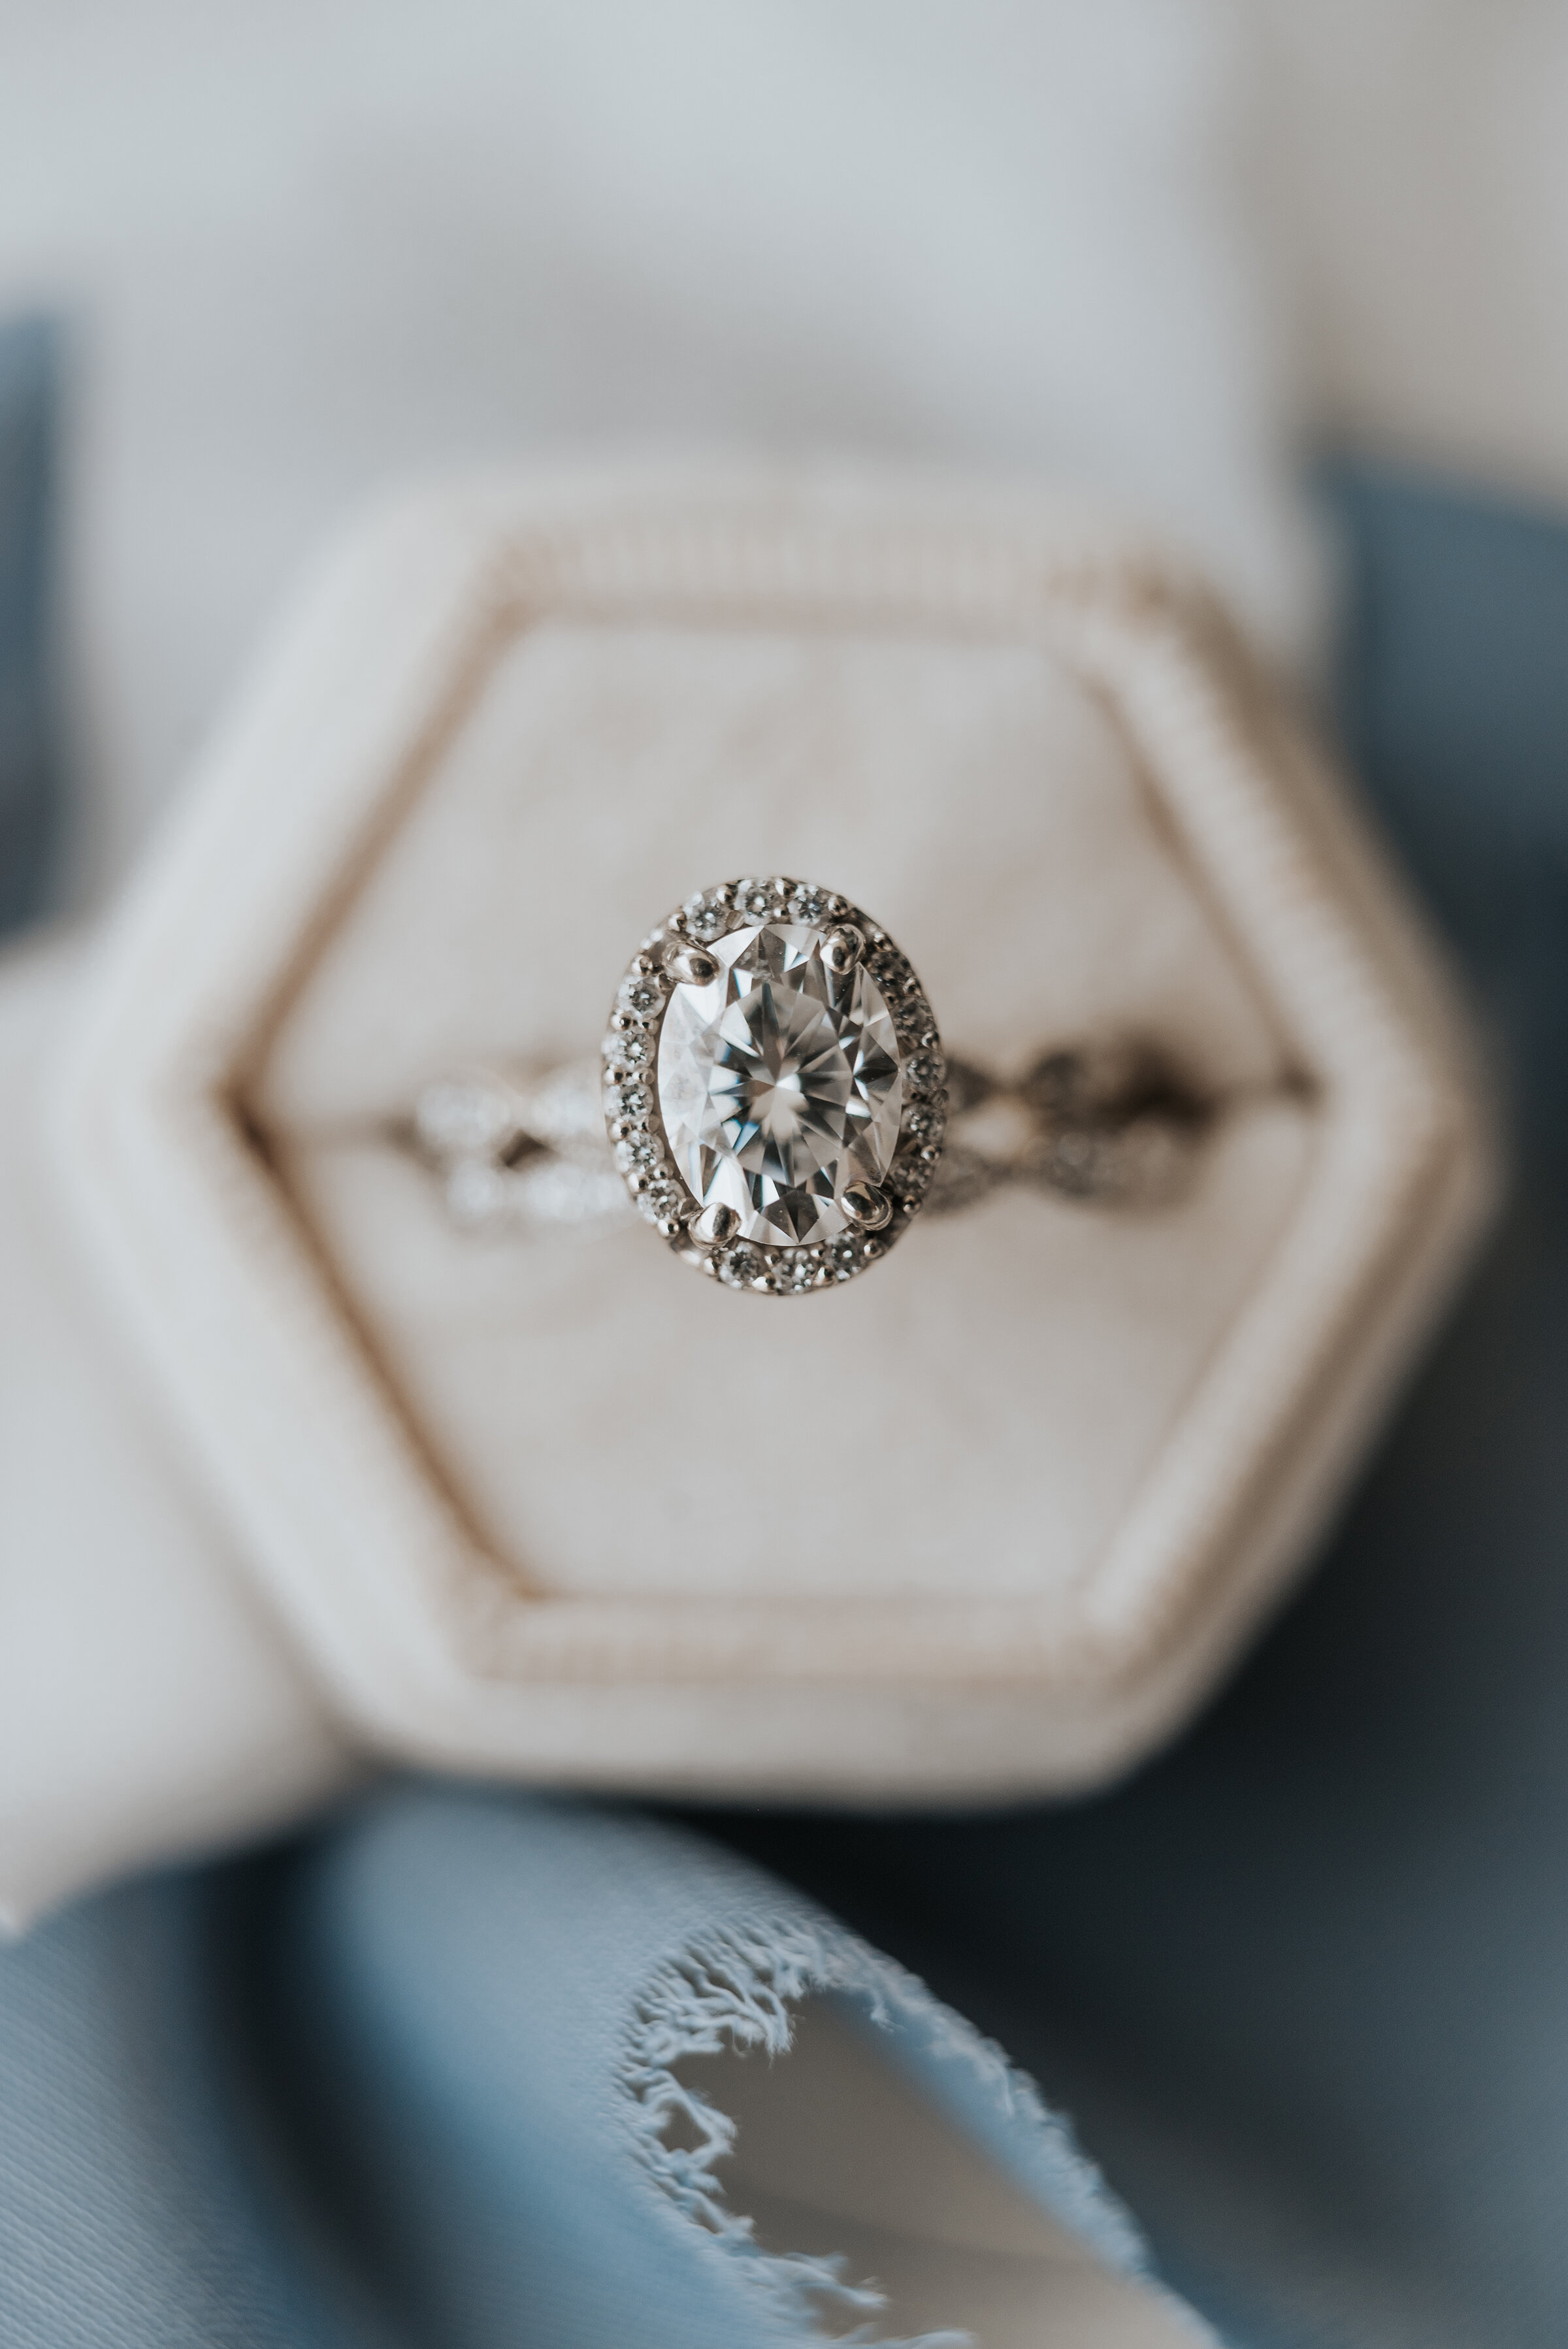 Brides wedding ring set in a diamond halo and placed in the most gorgeous white ring box that allows each diamond to shine. Wedding ring photoshoot in Ephraim Utah photography wedding outdoor location western inspired rustic Airbnb photo aesthetic #ephraimutah #utahphotography #weddingdayphotography #gettingmarried #rusticwedding #utahwedding #westernstyle #weddingphotoshoot